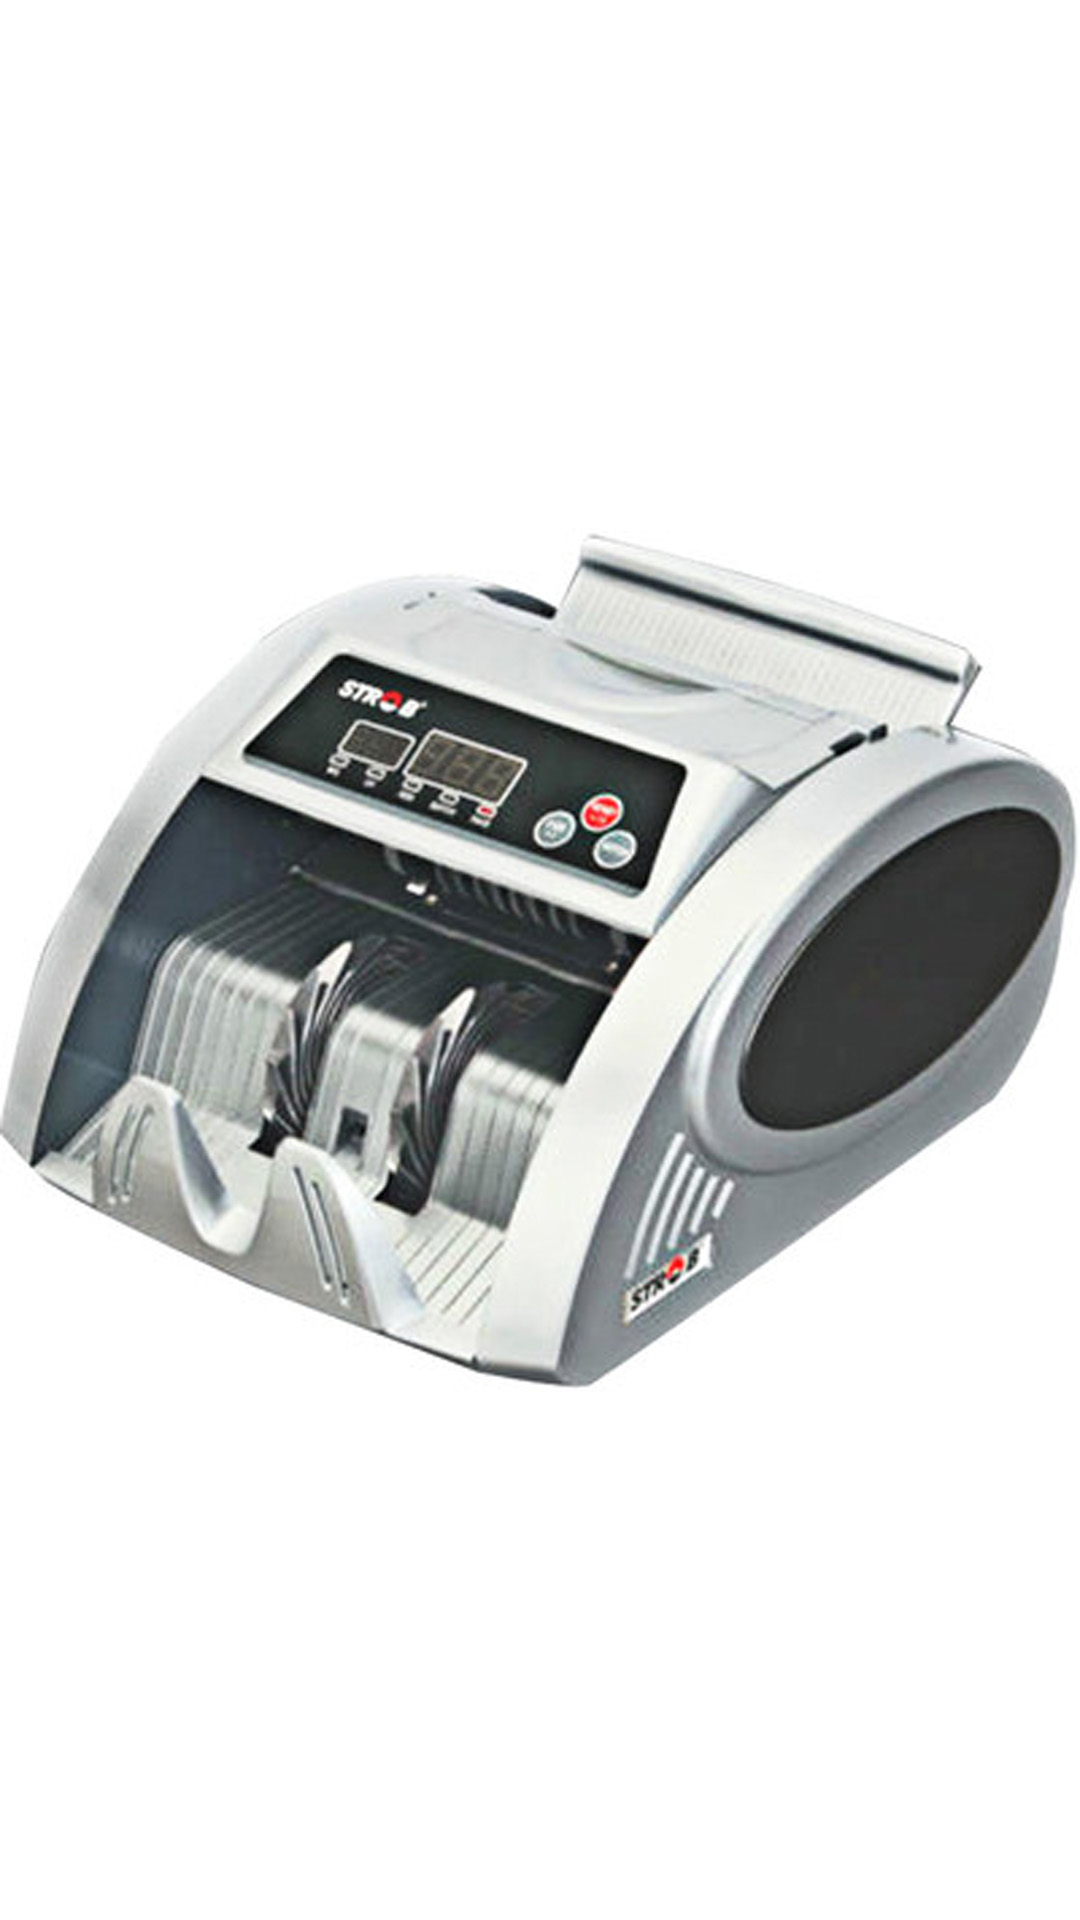 Strob ST2500 Note Counting Machine  Counting Speed   1000 notes/min  available at Paytm for Rs.5410